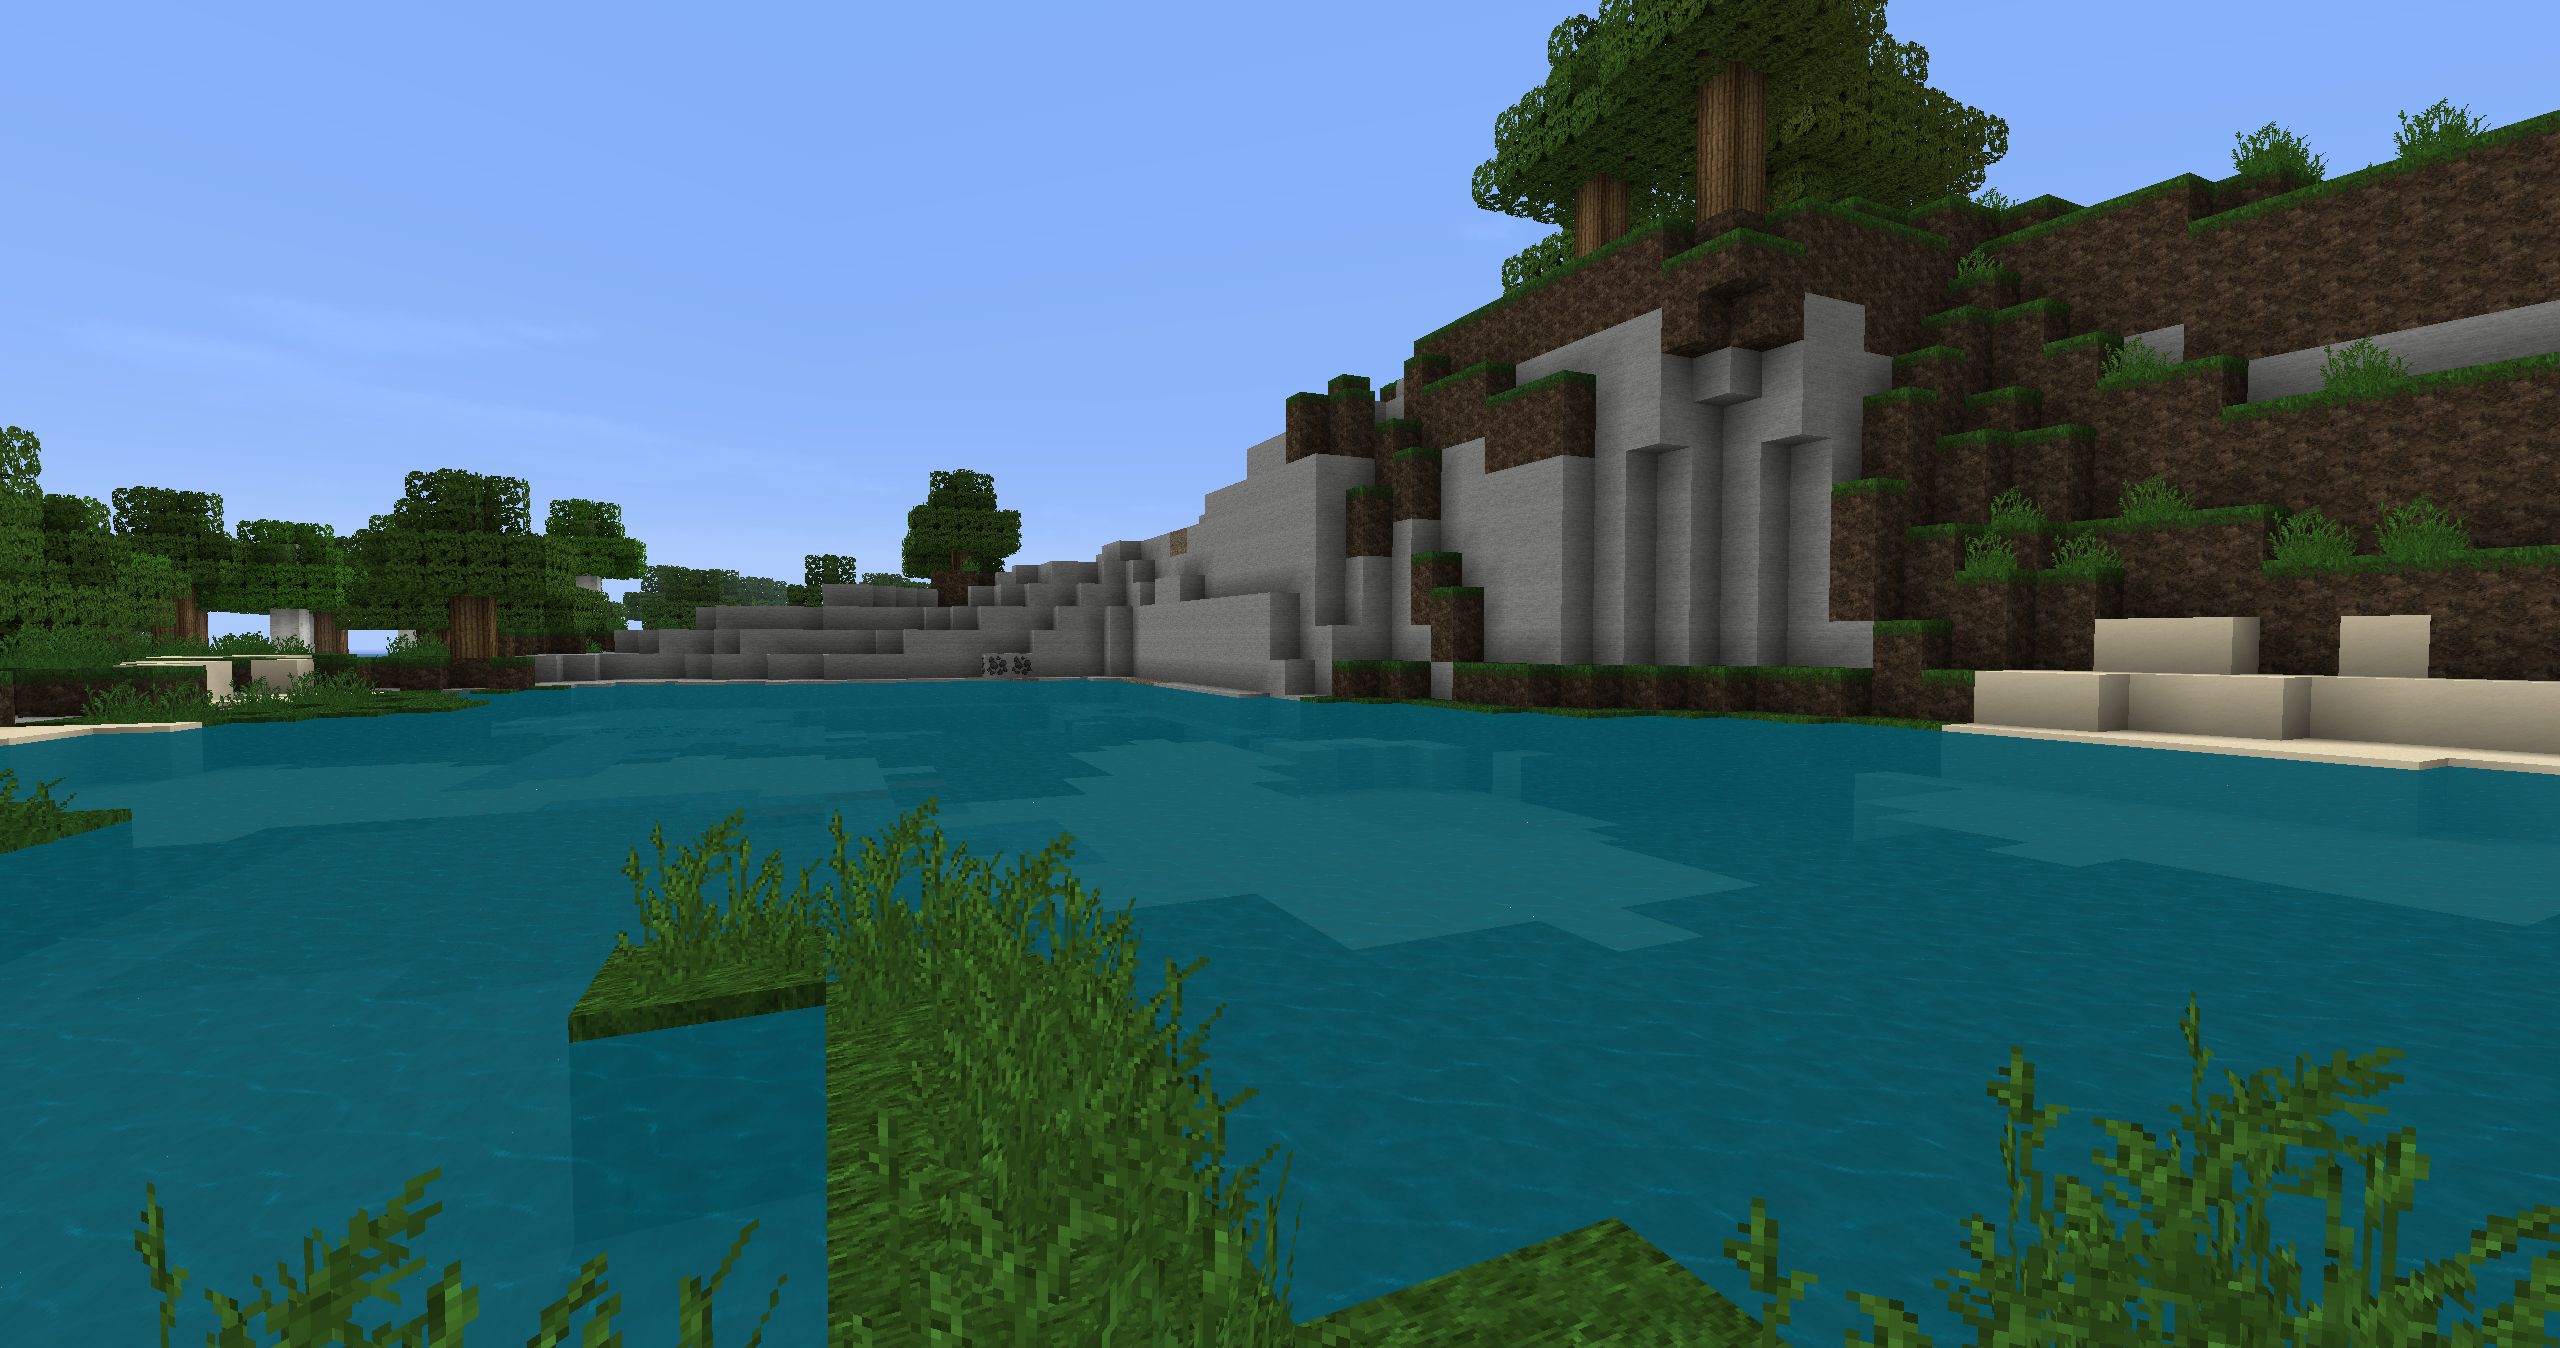 2013 01 12 10.58.34 [1.7.2/1.6.4] [64x] Moartex Texture Pack Download